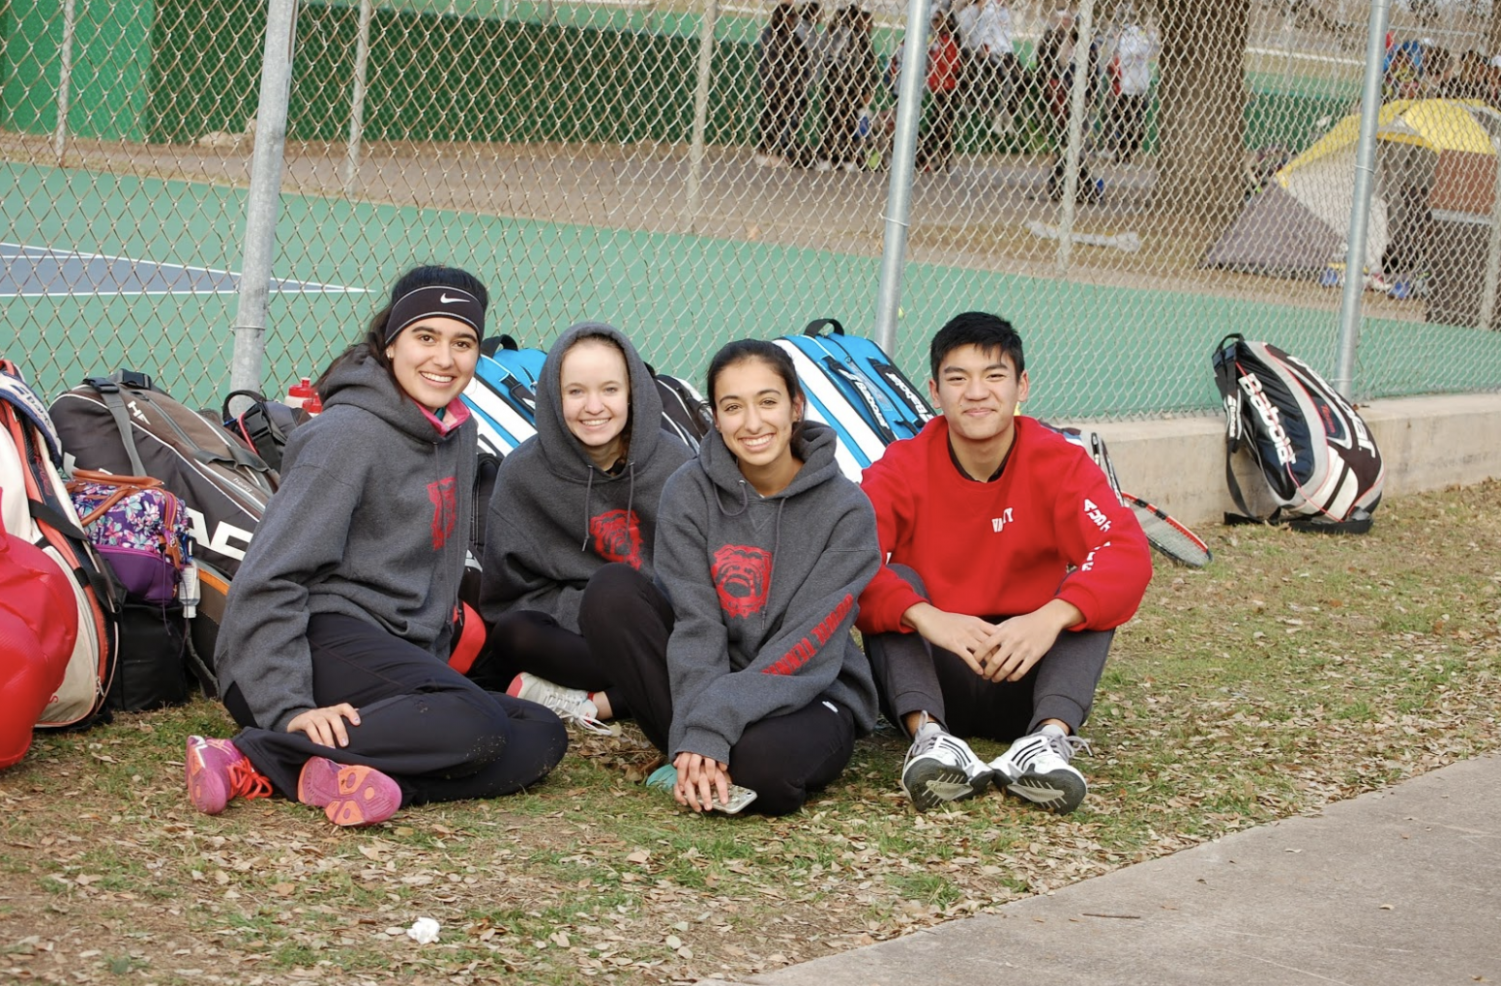 Waiting in anticipation: Emily Leeke, Kayleigh Shumaker, Sydney Johnson, and Stephen Do huddle together in the cold while waiting for their next match at UT Whitaker courts.